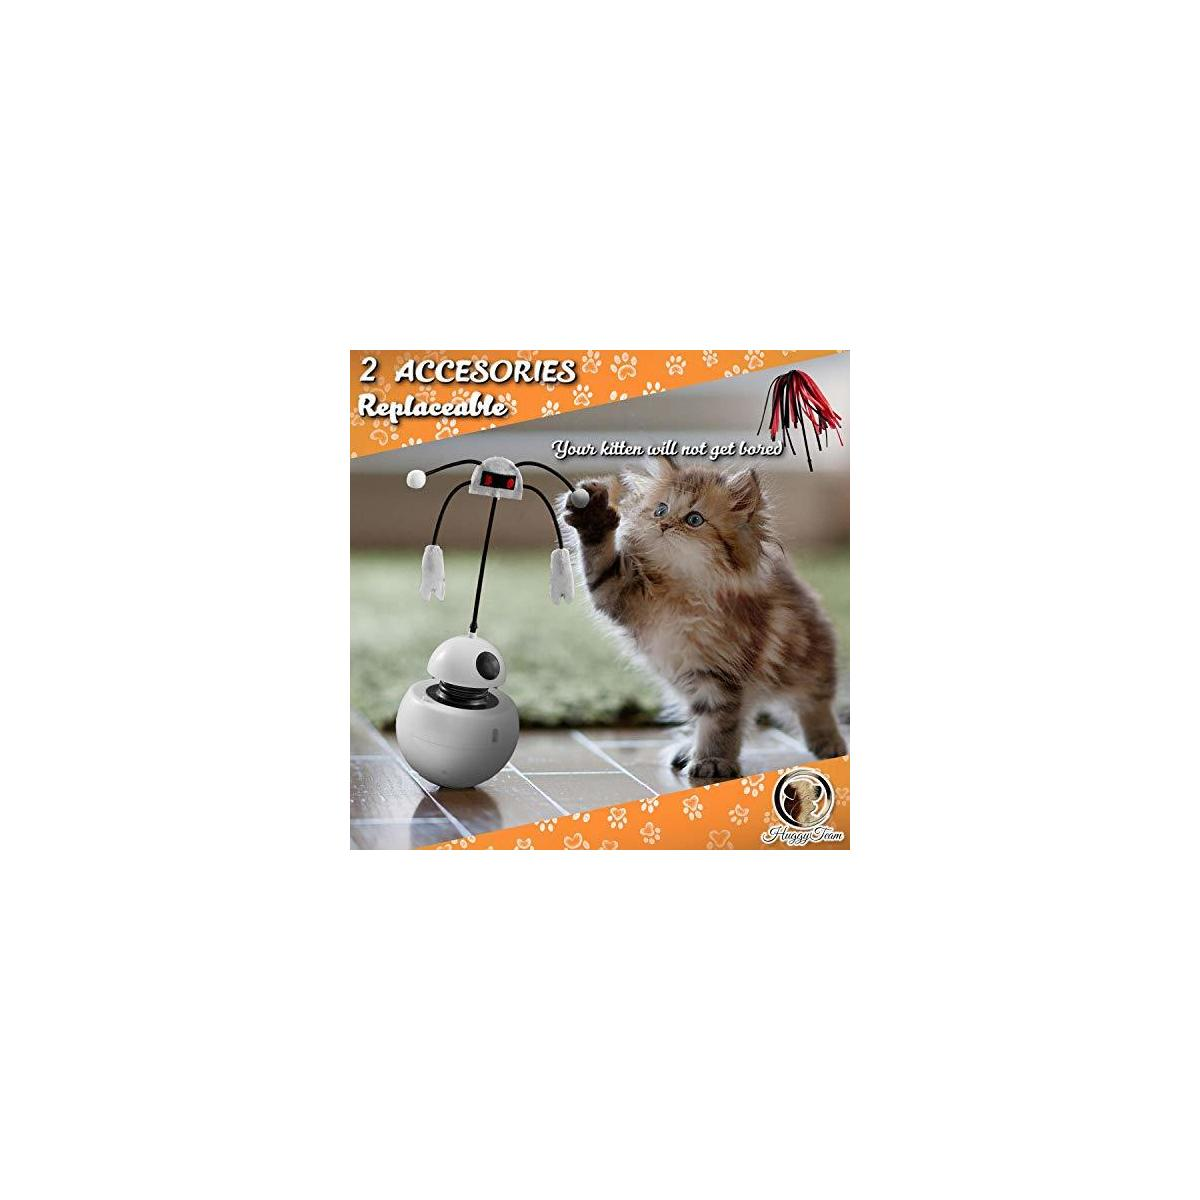 HuggyTeam Smart Interactive Cat Toy - Light Pointer for Cats, 360 Degree Self Rotating Ball, Sound, Accessory Replaceable. Free- Fish Toy. Every Detail Stimulate Hunting Instinct for Your Cats.